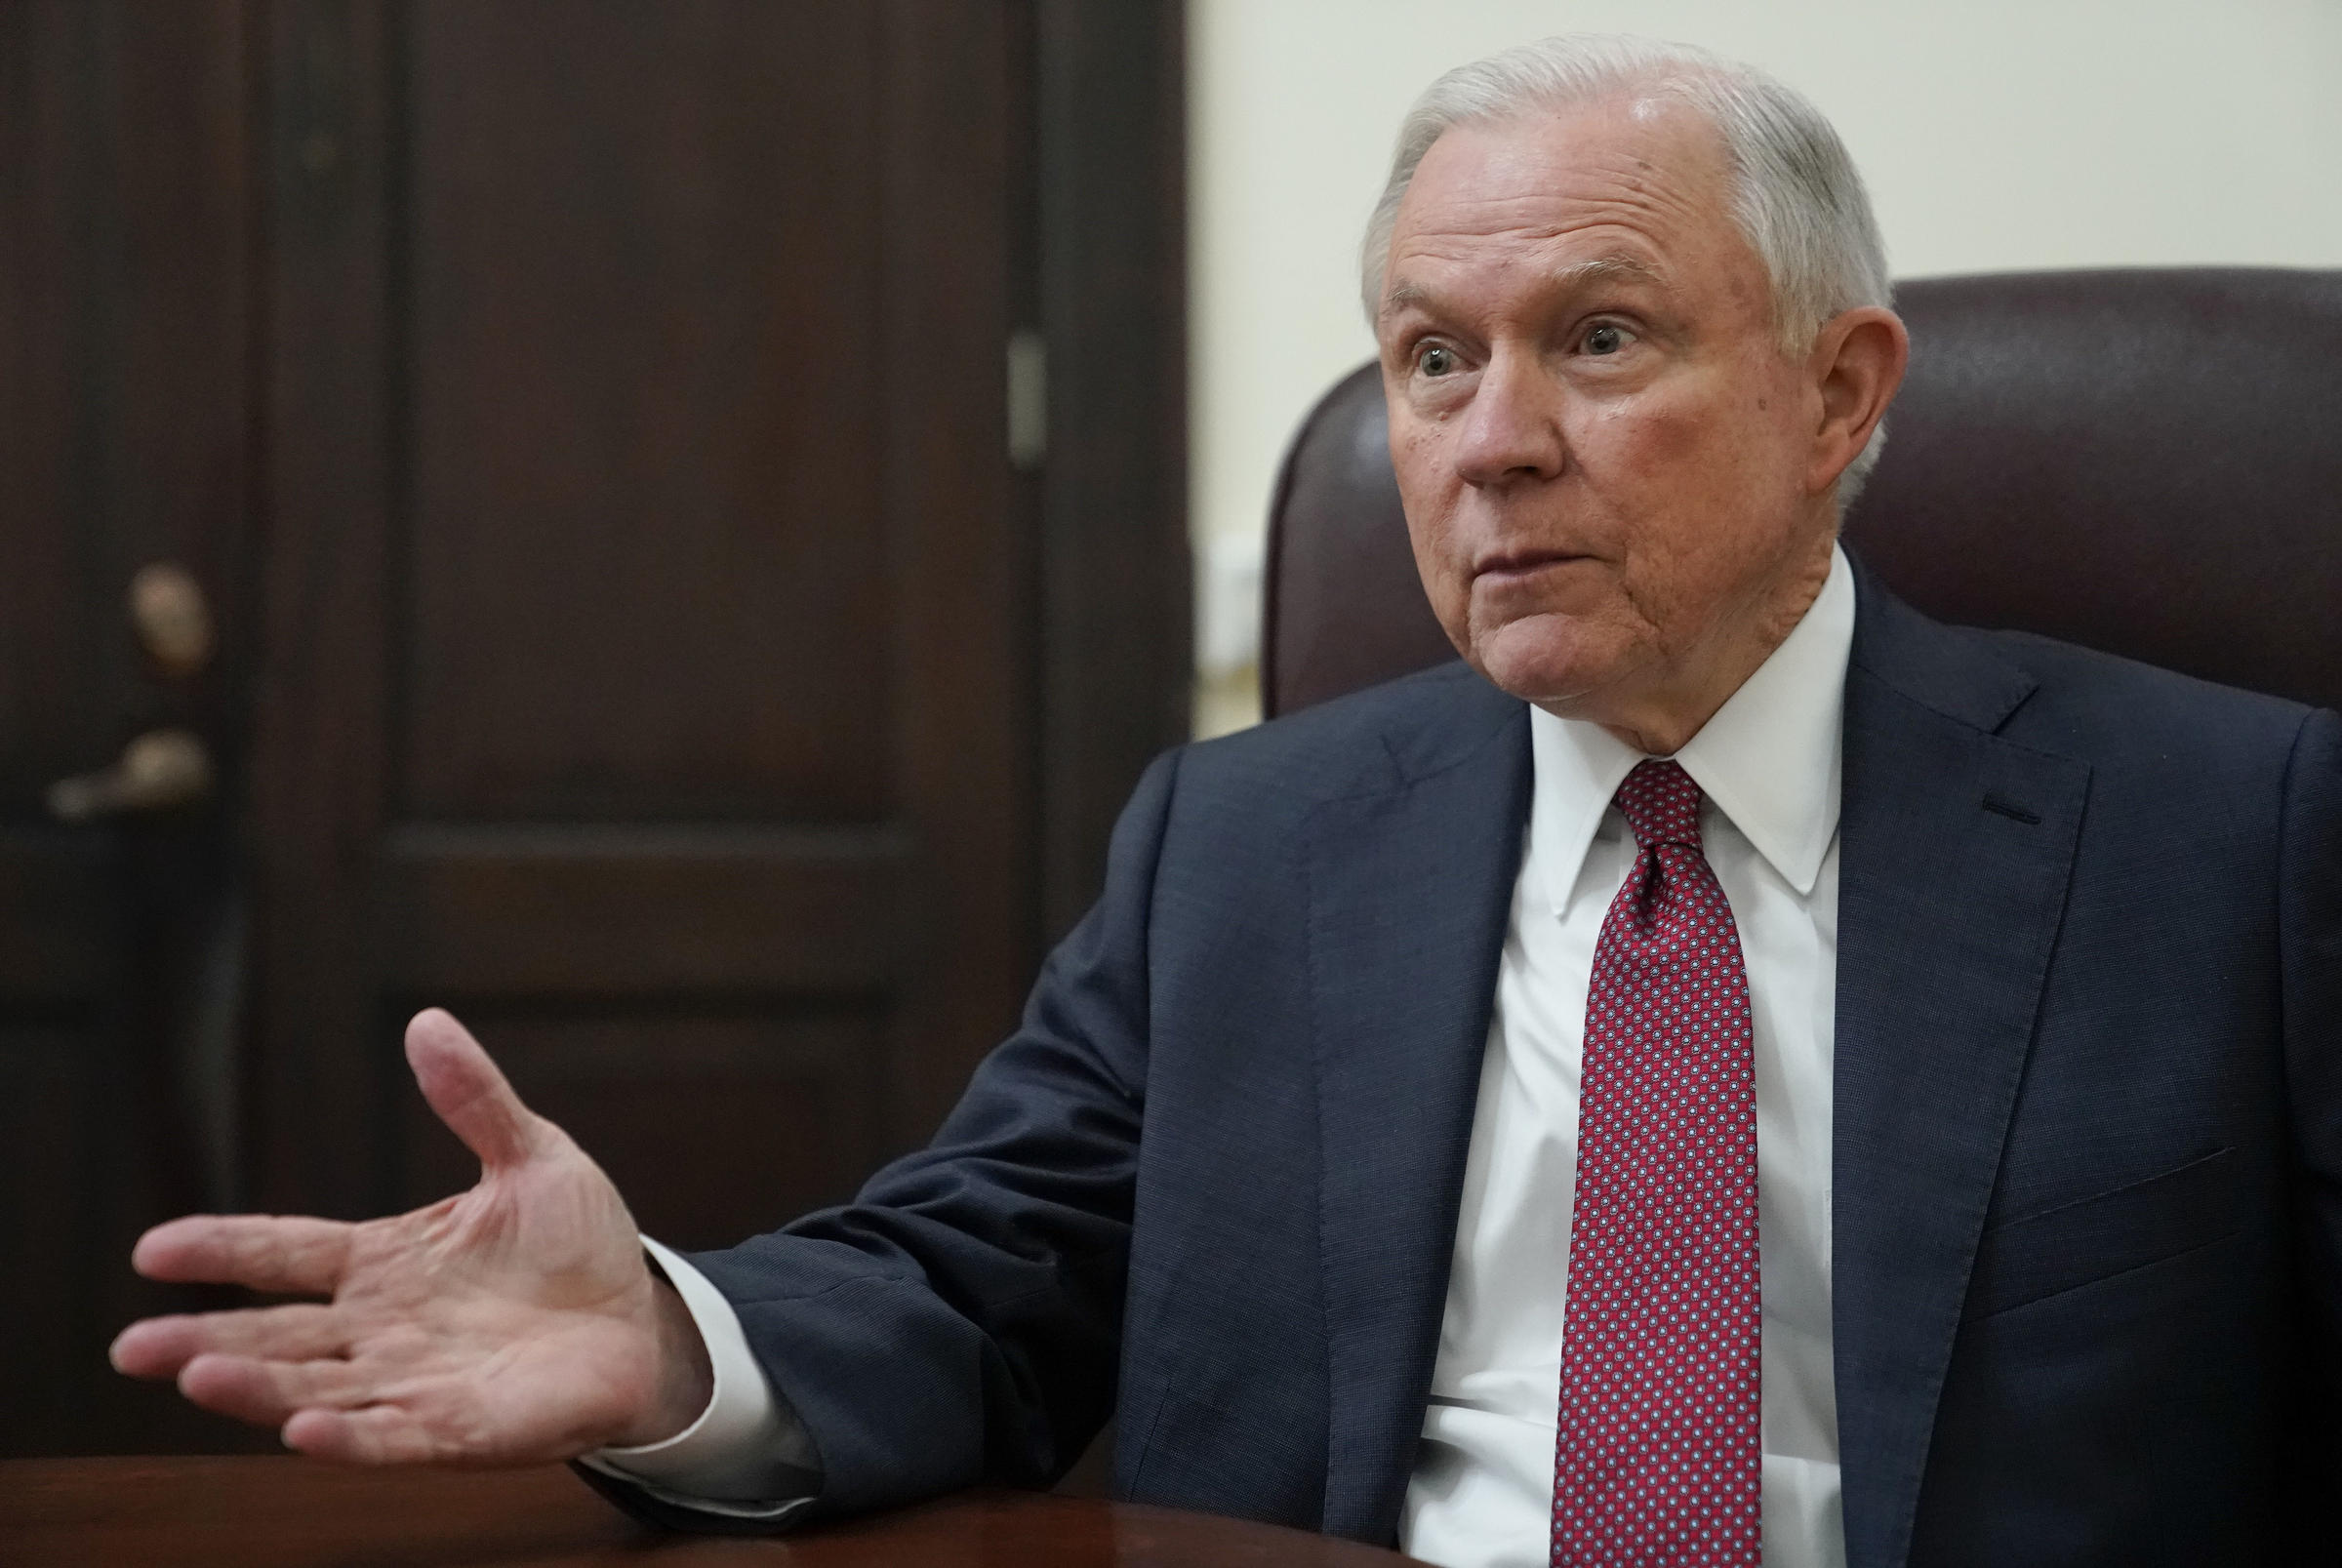 Sessions: You're darned right we're going after leakers - and maybe the media